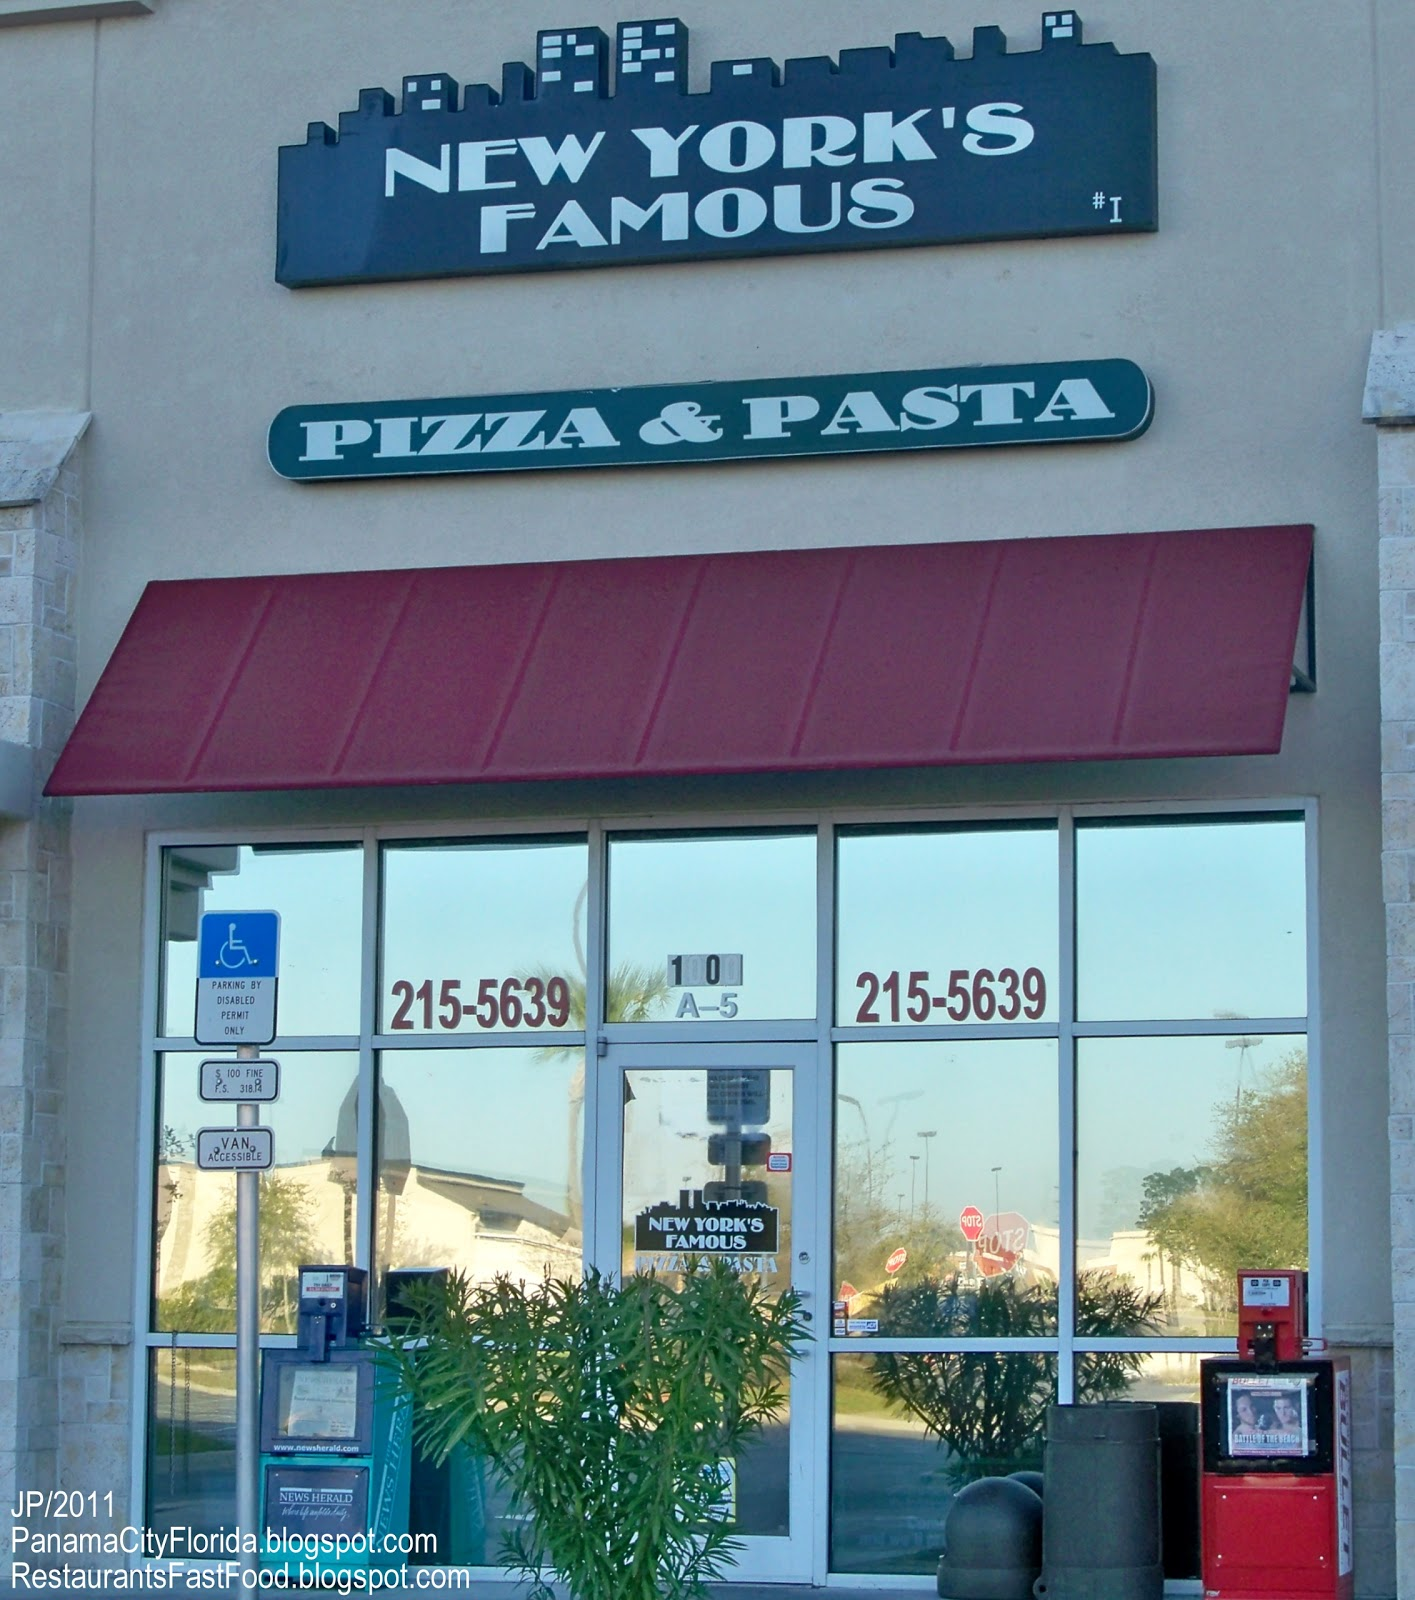 ... PIZZA & PASTA RESTAURANT PANAMA CITY FLORIDA,New York Pizza Panama